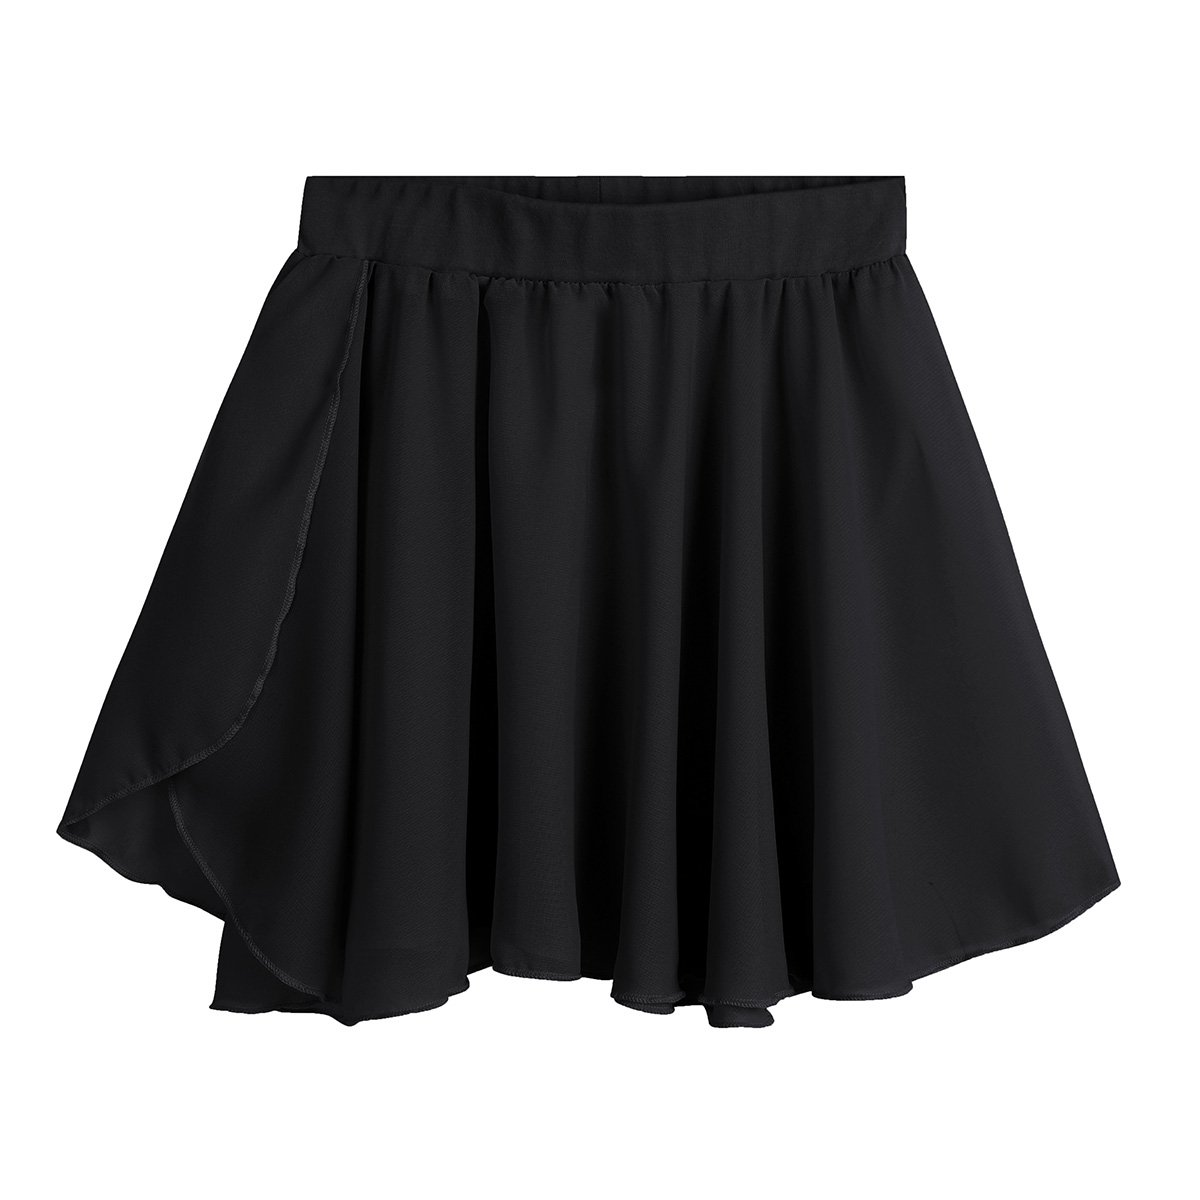 Freebily Kids Girls Dance Basic Classic Chiffon Mini Pull-On Wrap Skirt Black 7-8 by Freebily (Image #1)